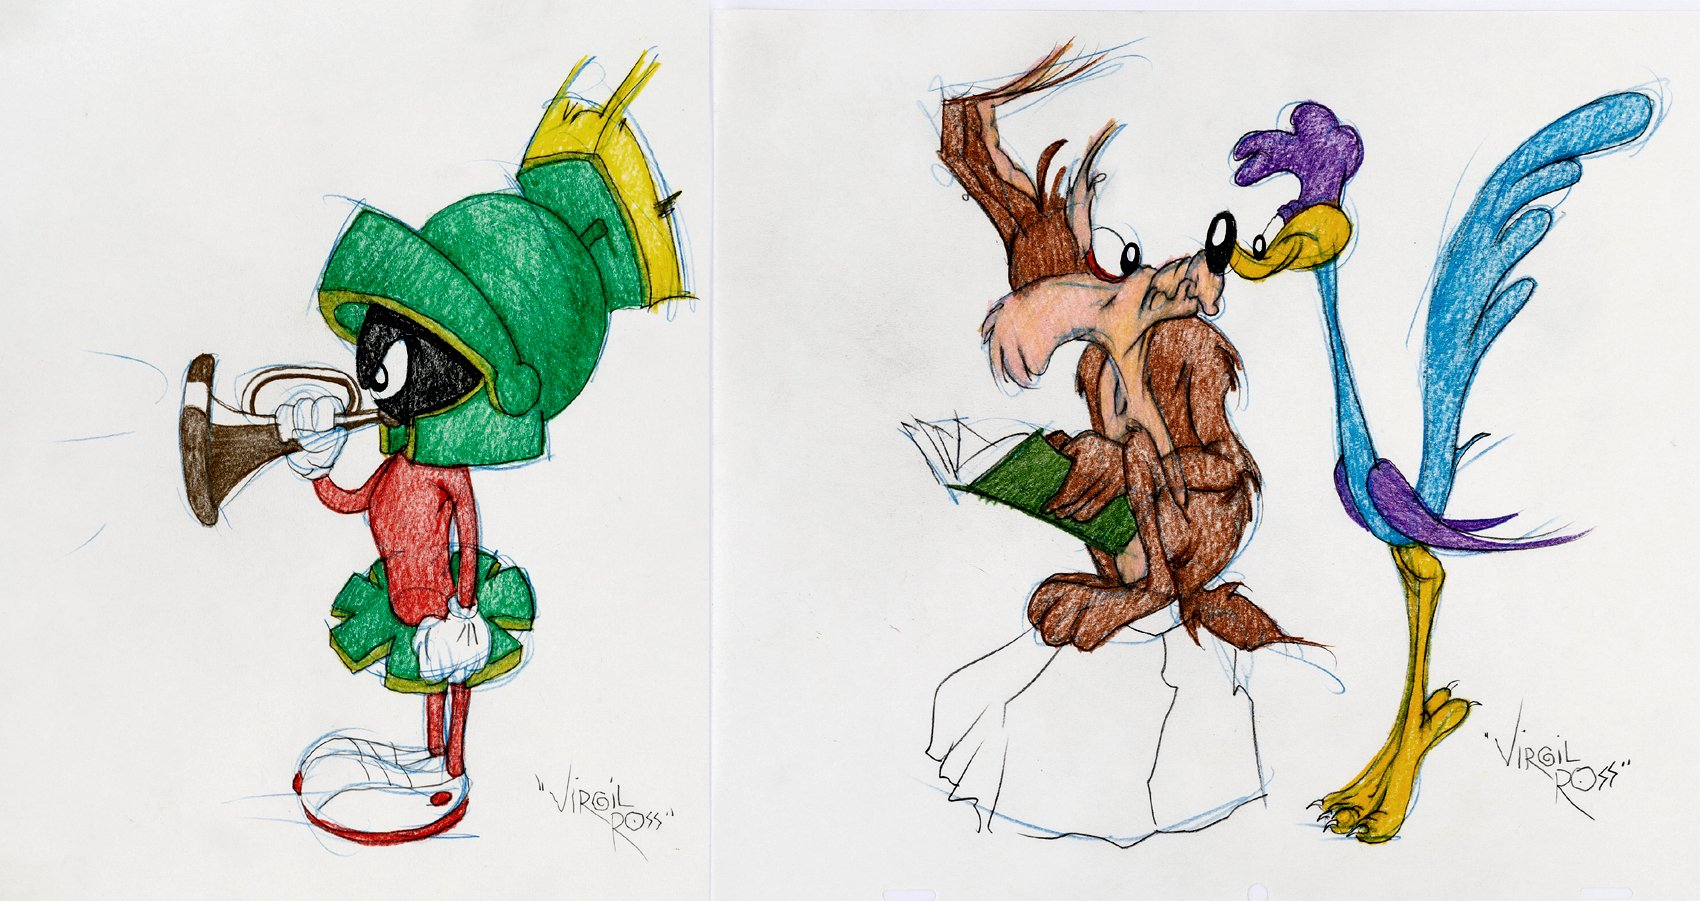 Wile E. Coyote / Road Runner & Marvin Pinups (SOLD LIVE ON 'DUELING DEALERS OF COMIC ART' EPISODE #38 PODCAST ON 9-29-2021)